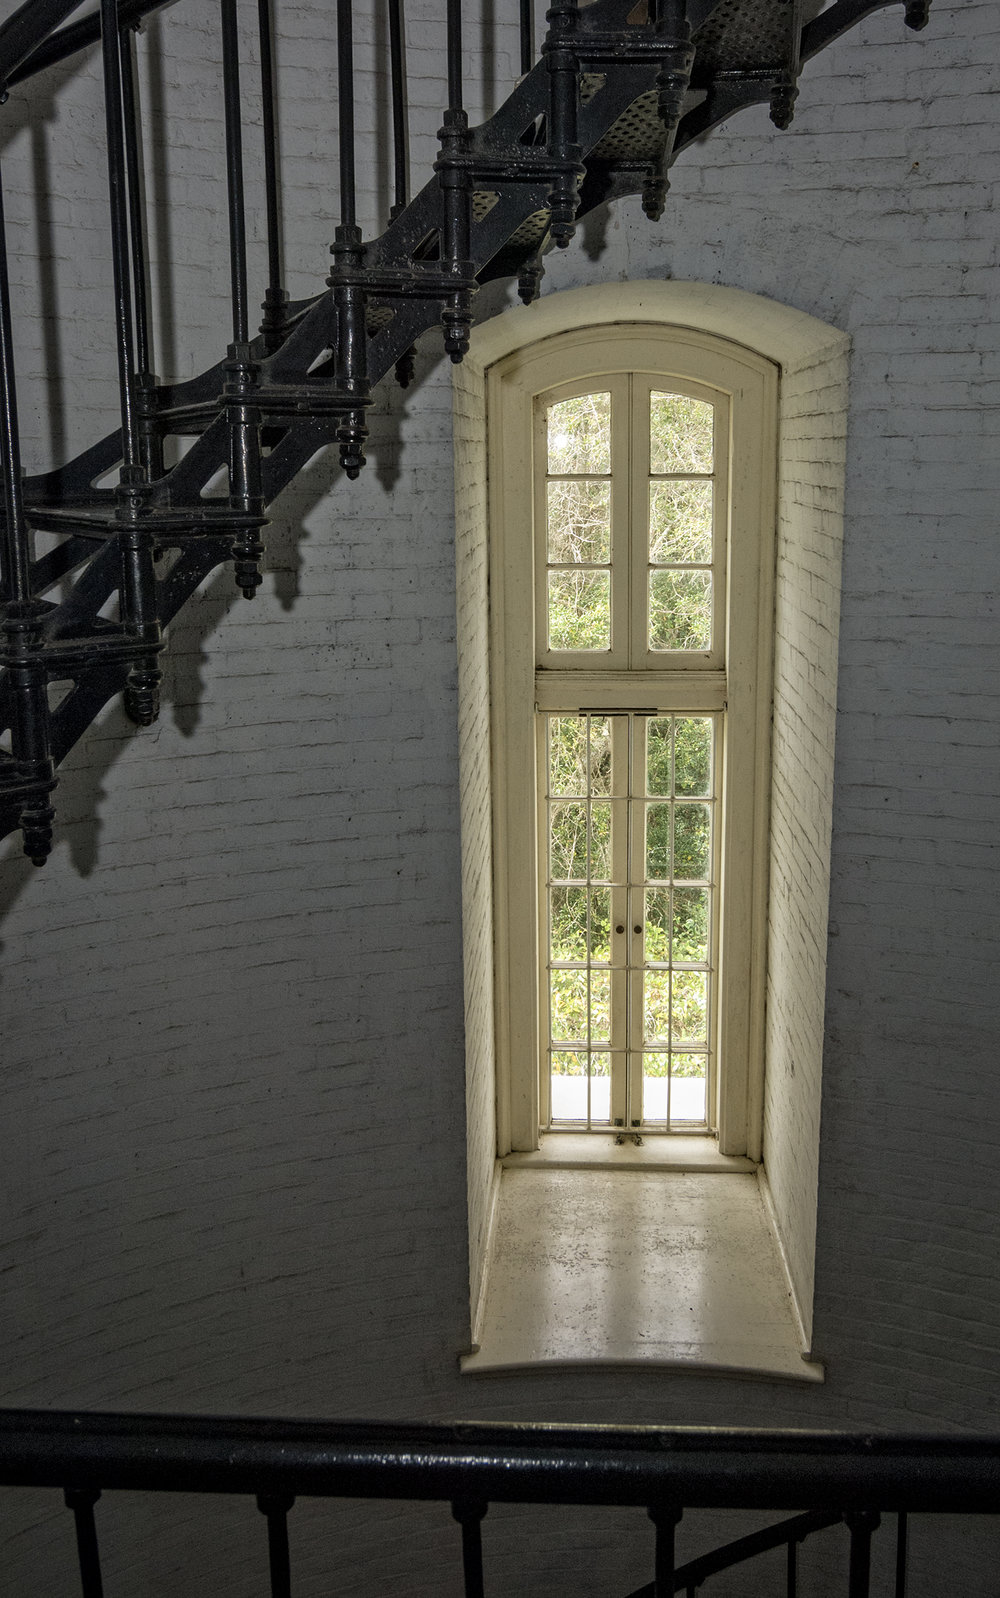 Stairs and Window